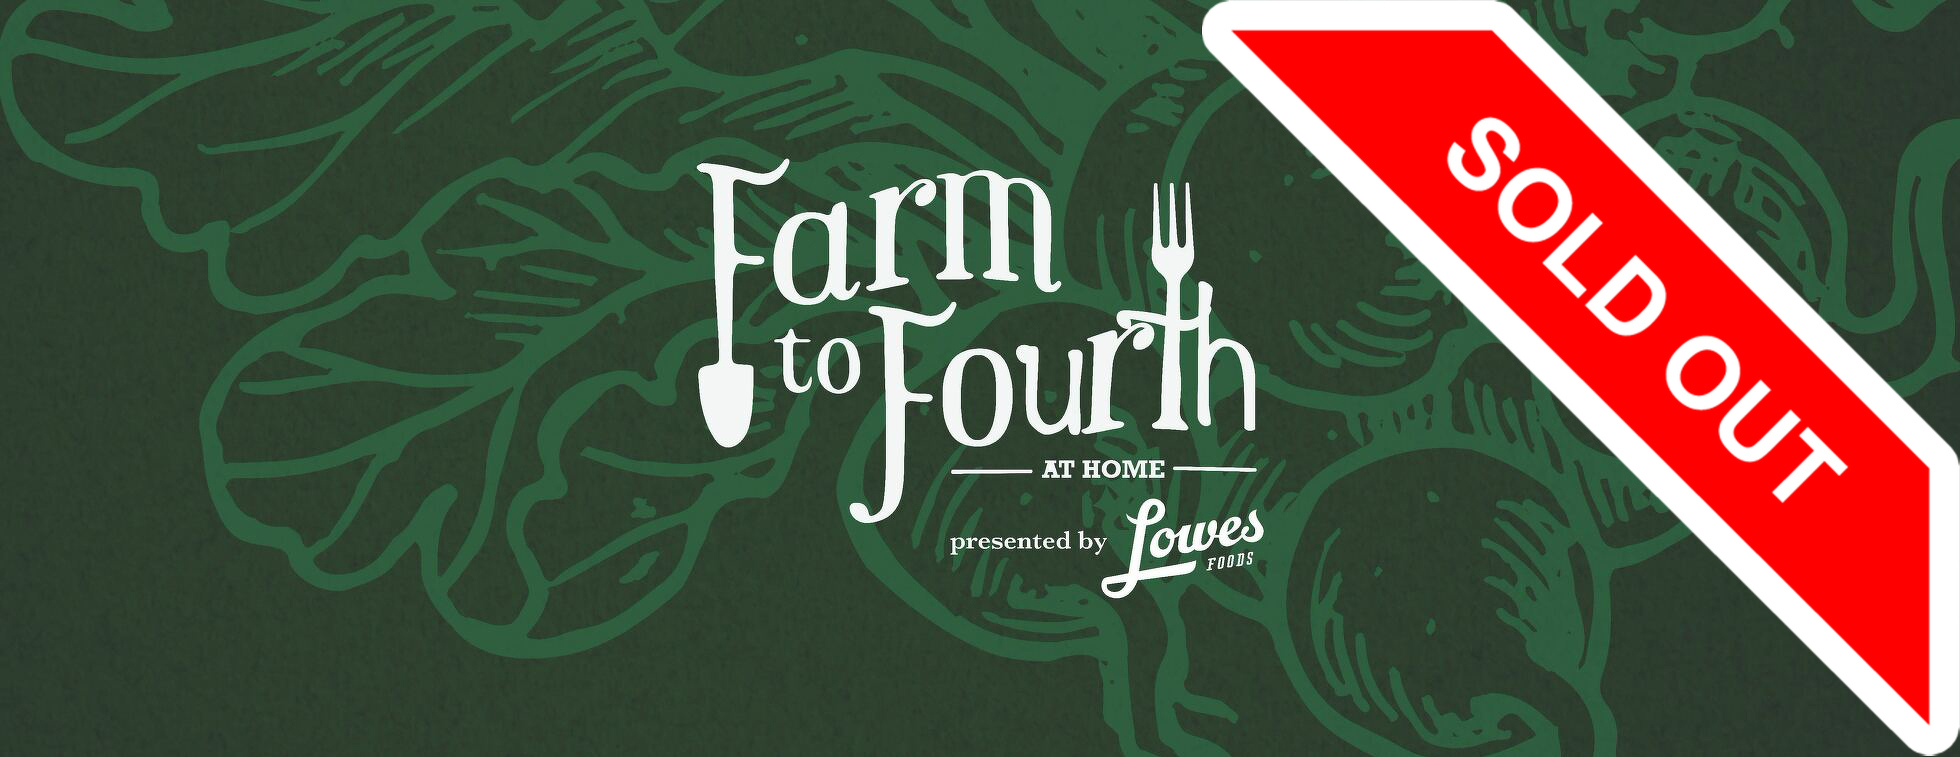 Farm to Fourth at Home